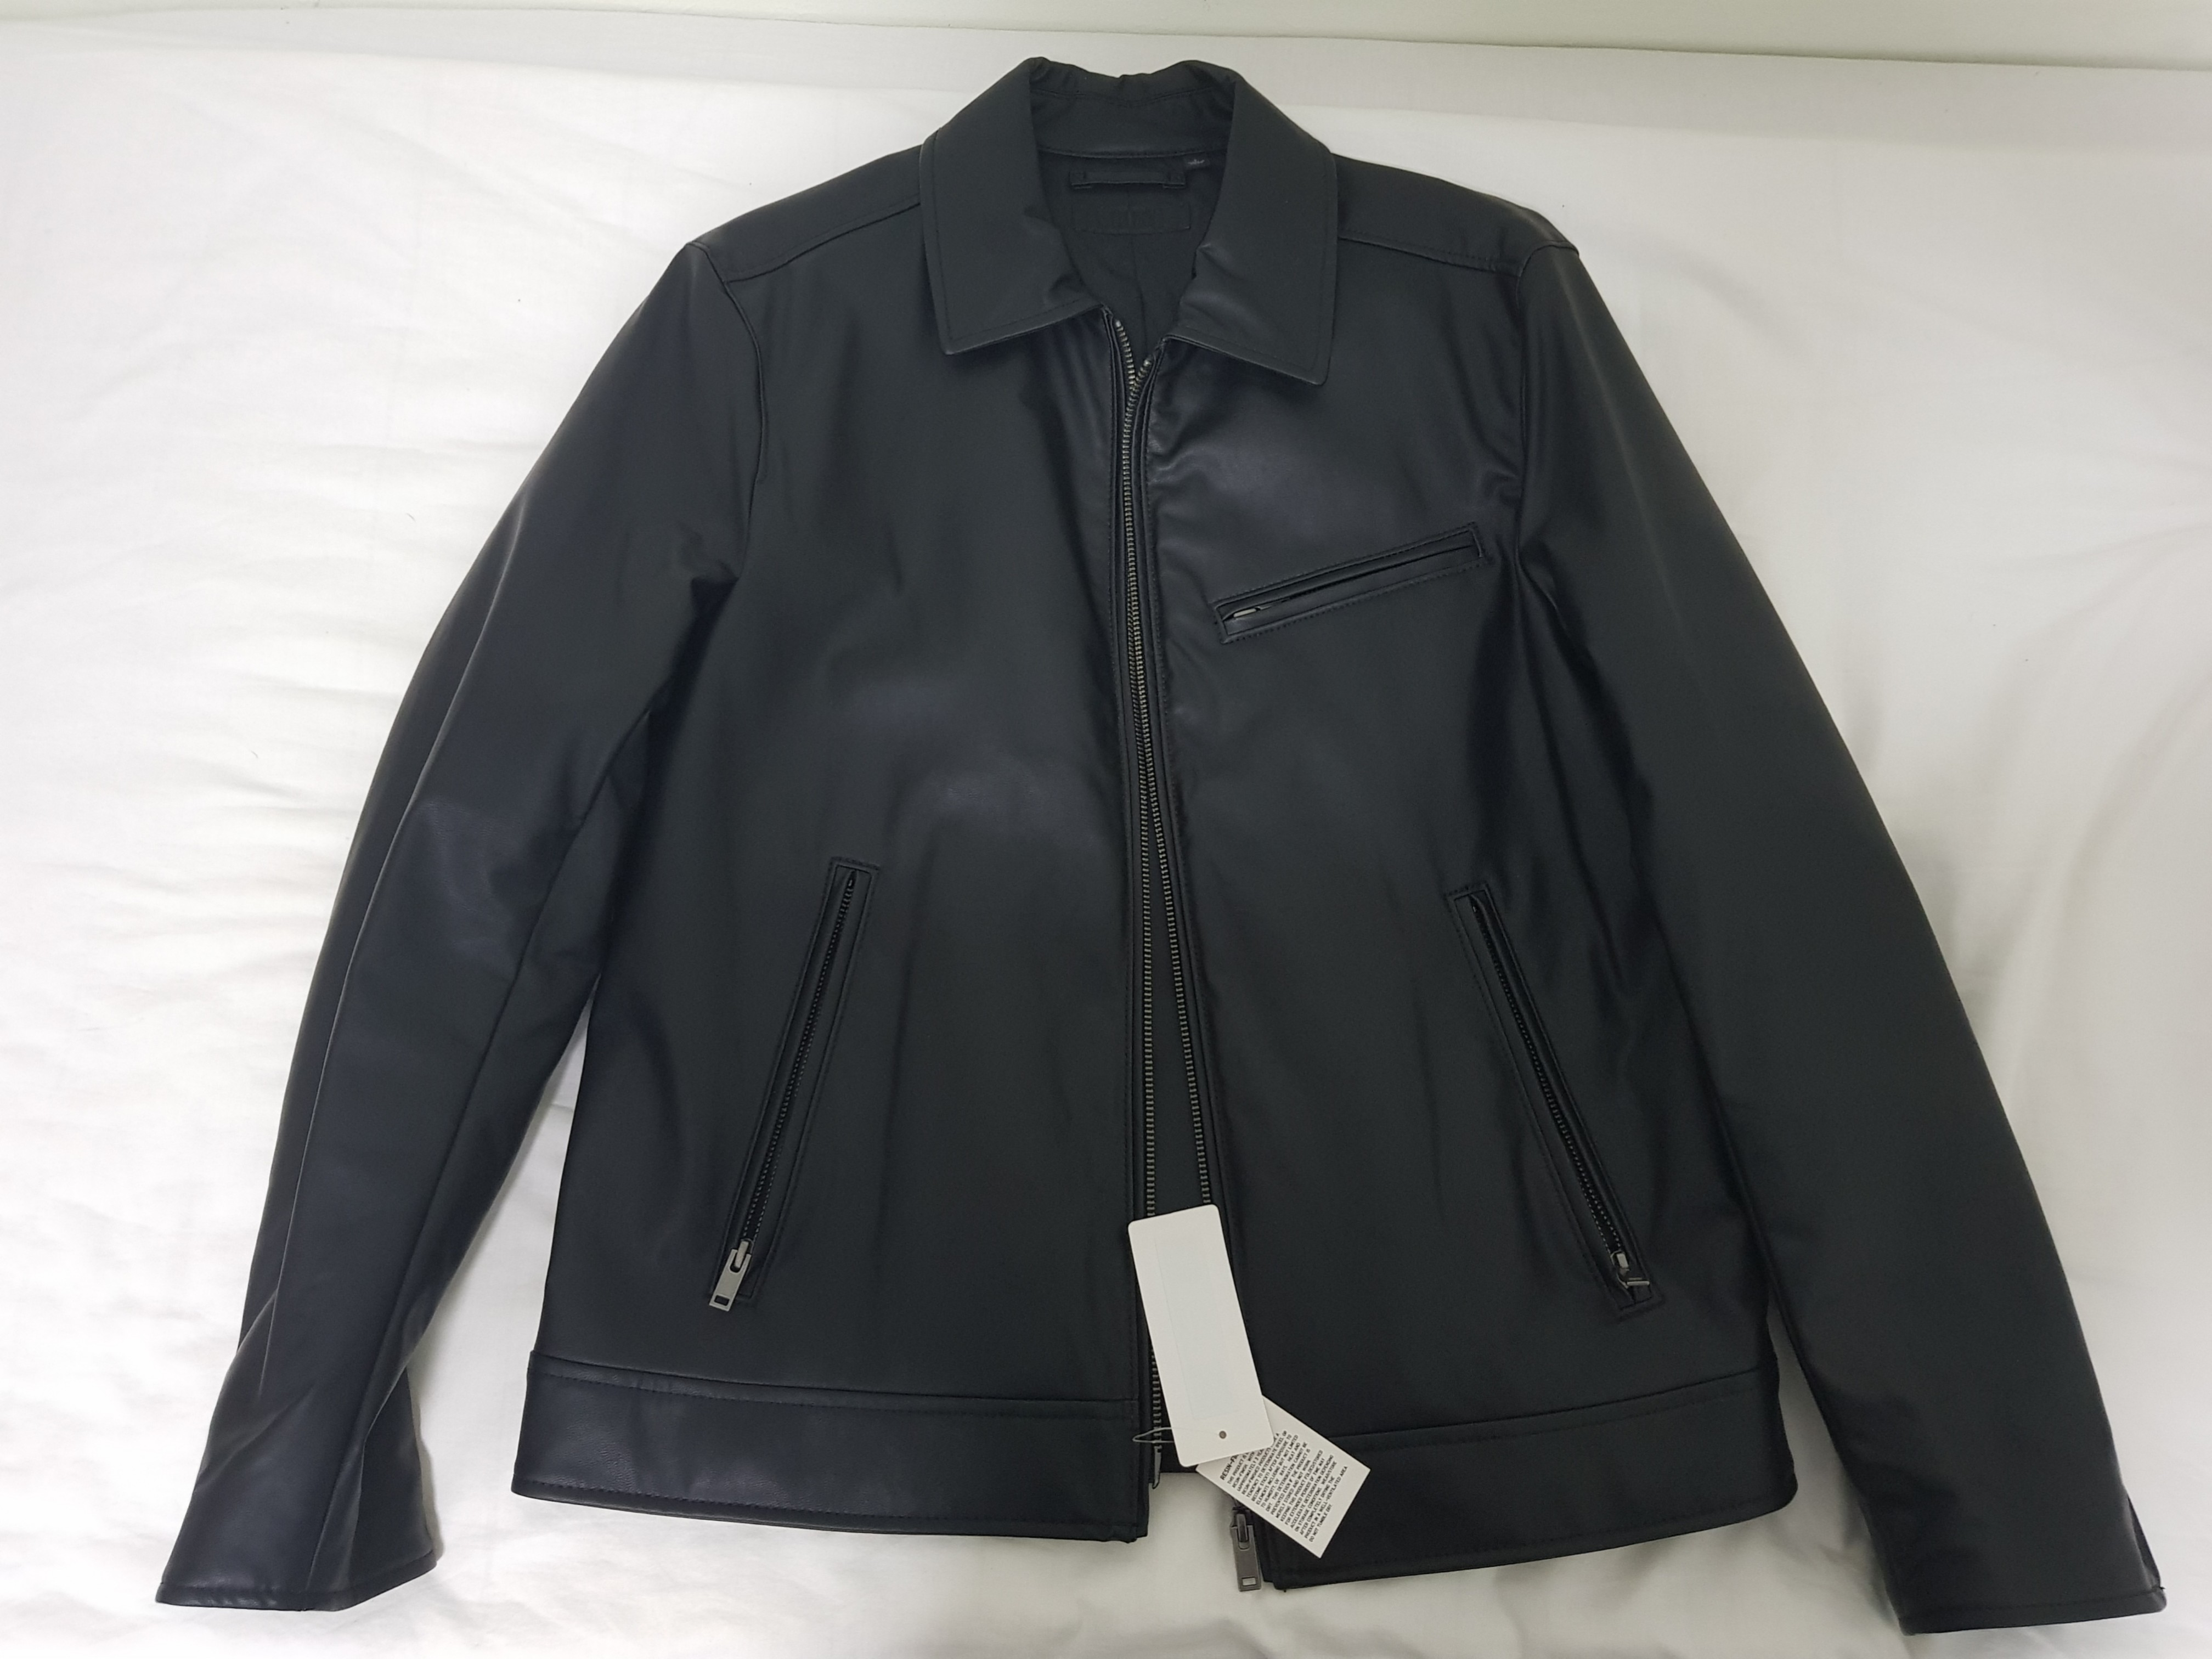 b80bef48c6e8 Uniqlo faux leather jacket for men price reduced, Men's Fashion, Clothes,  Outerwear on Carousell